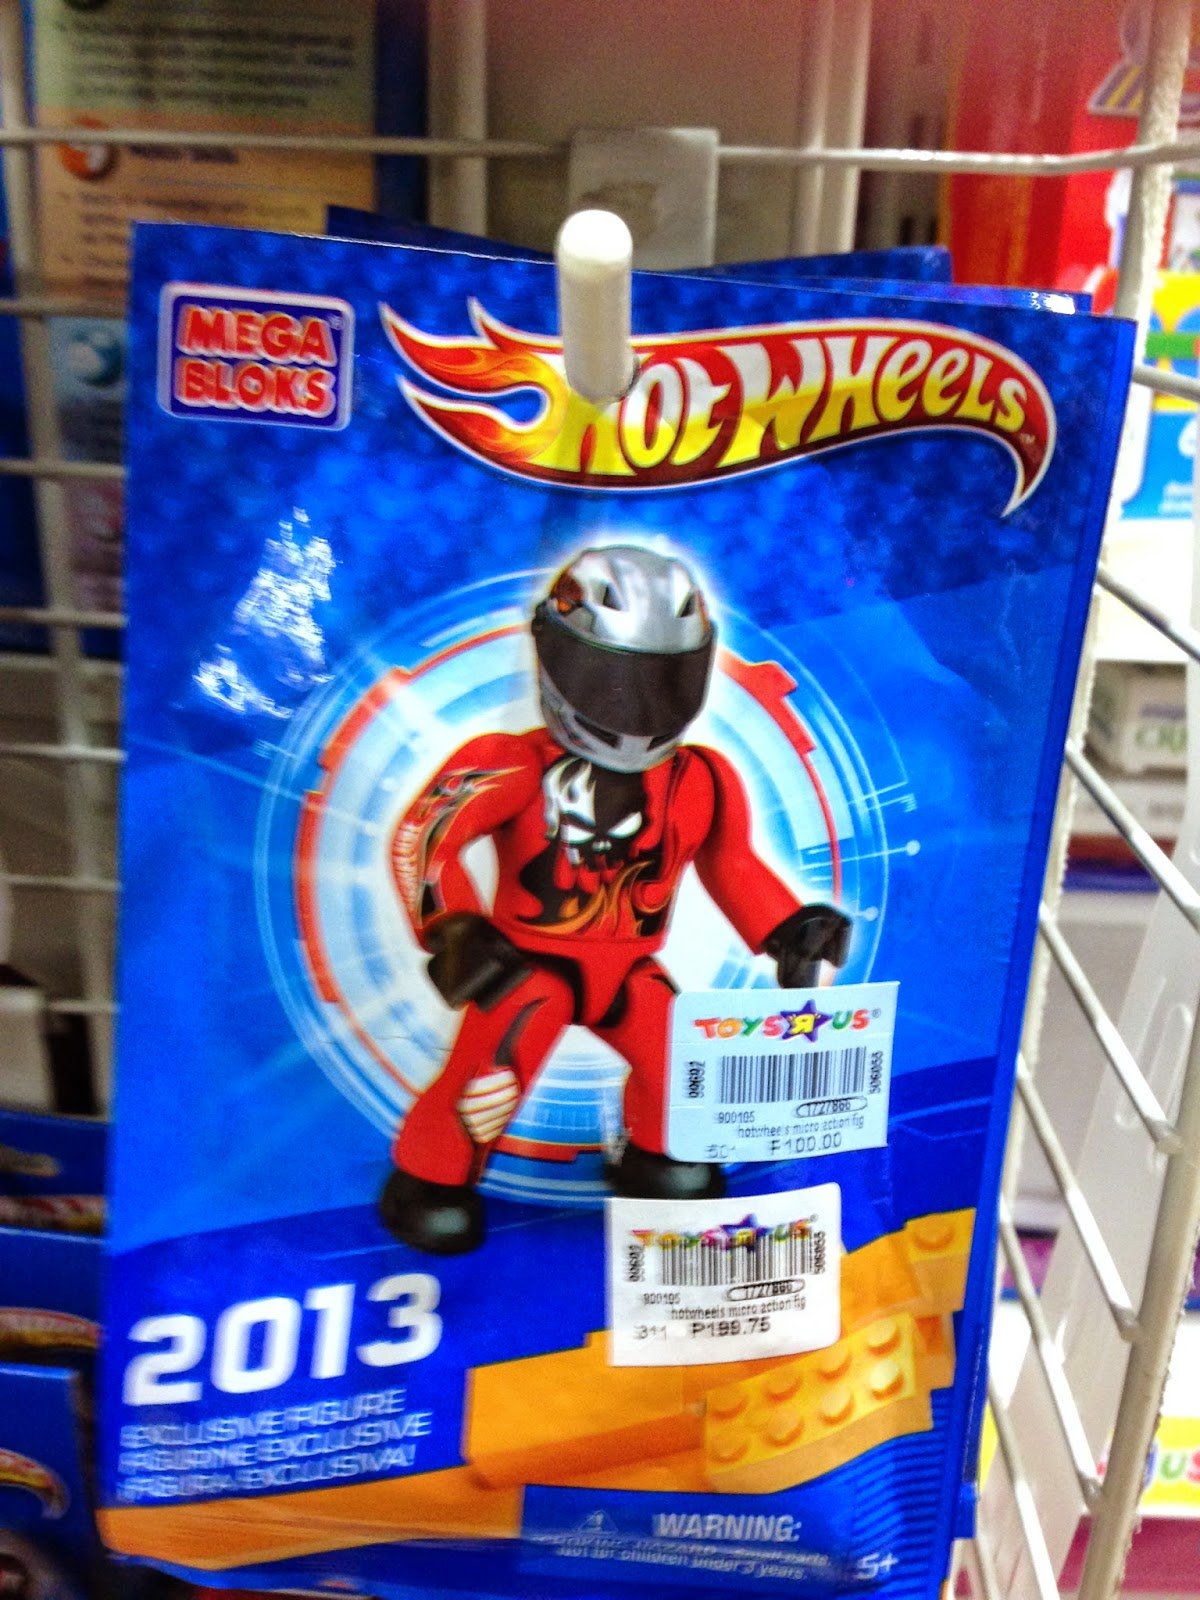 Toy Sale in Manila, Philippines 2015 : Hot Wheels Mega Bloks Surprise Toys on SALE (Micro Action Figure)